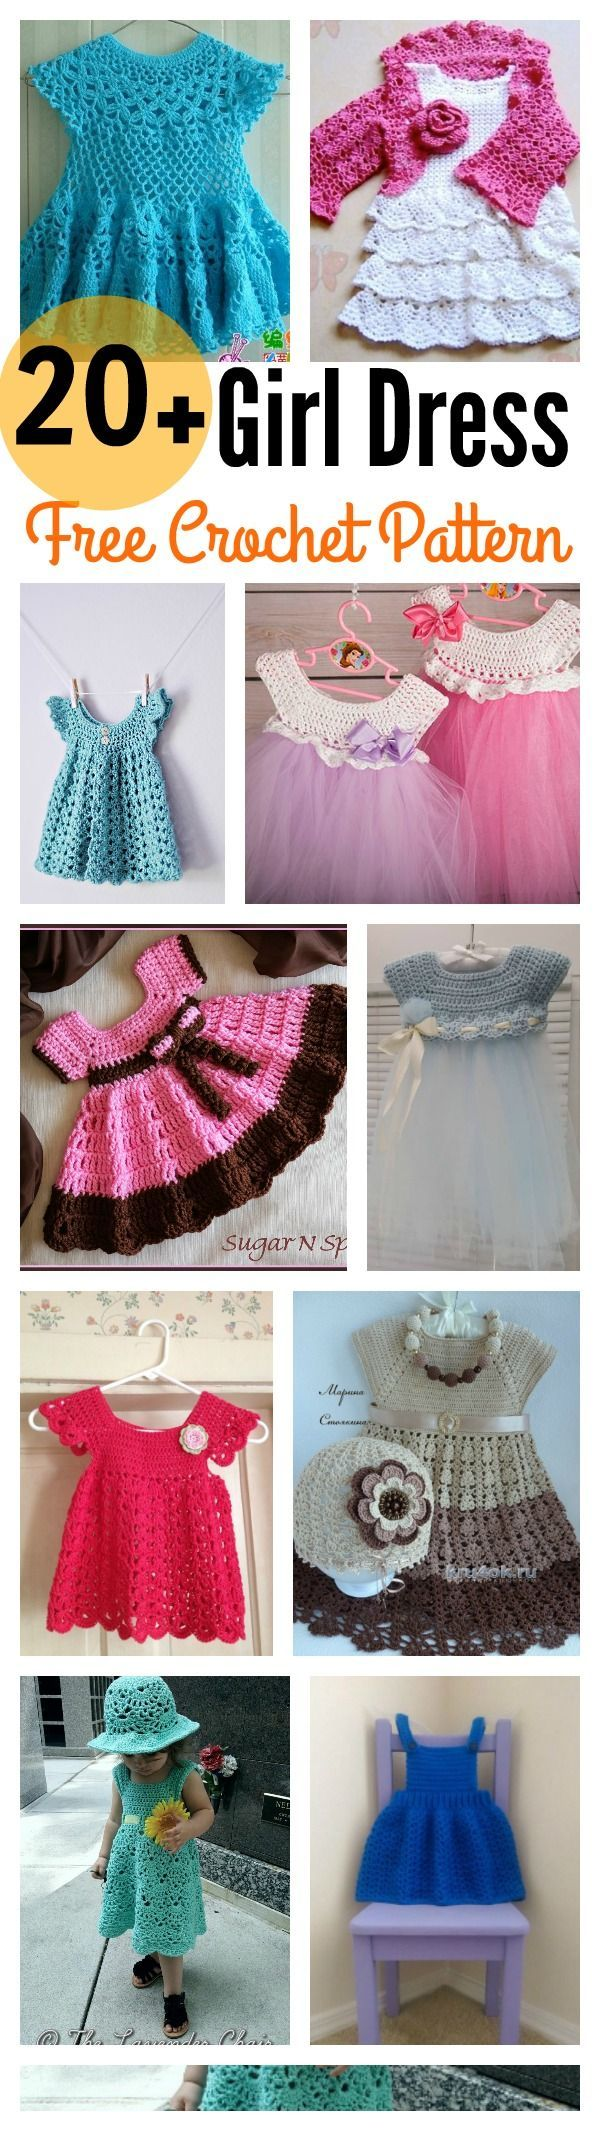 20+ Crochet Girl Dress with Free Pattern | Pinterest | Crochet girls ...